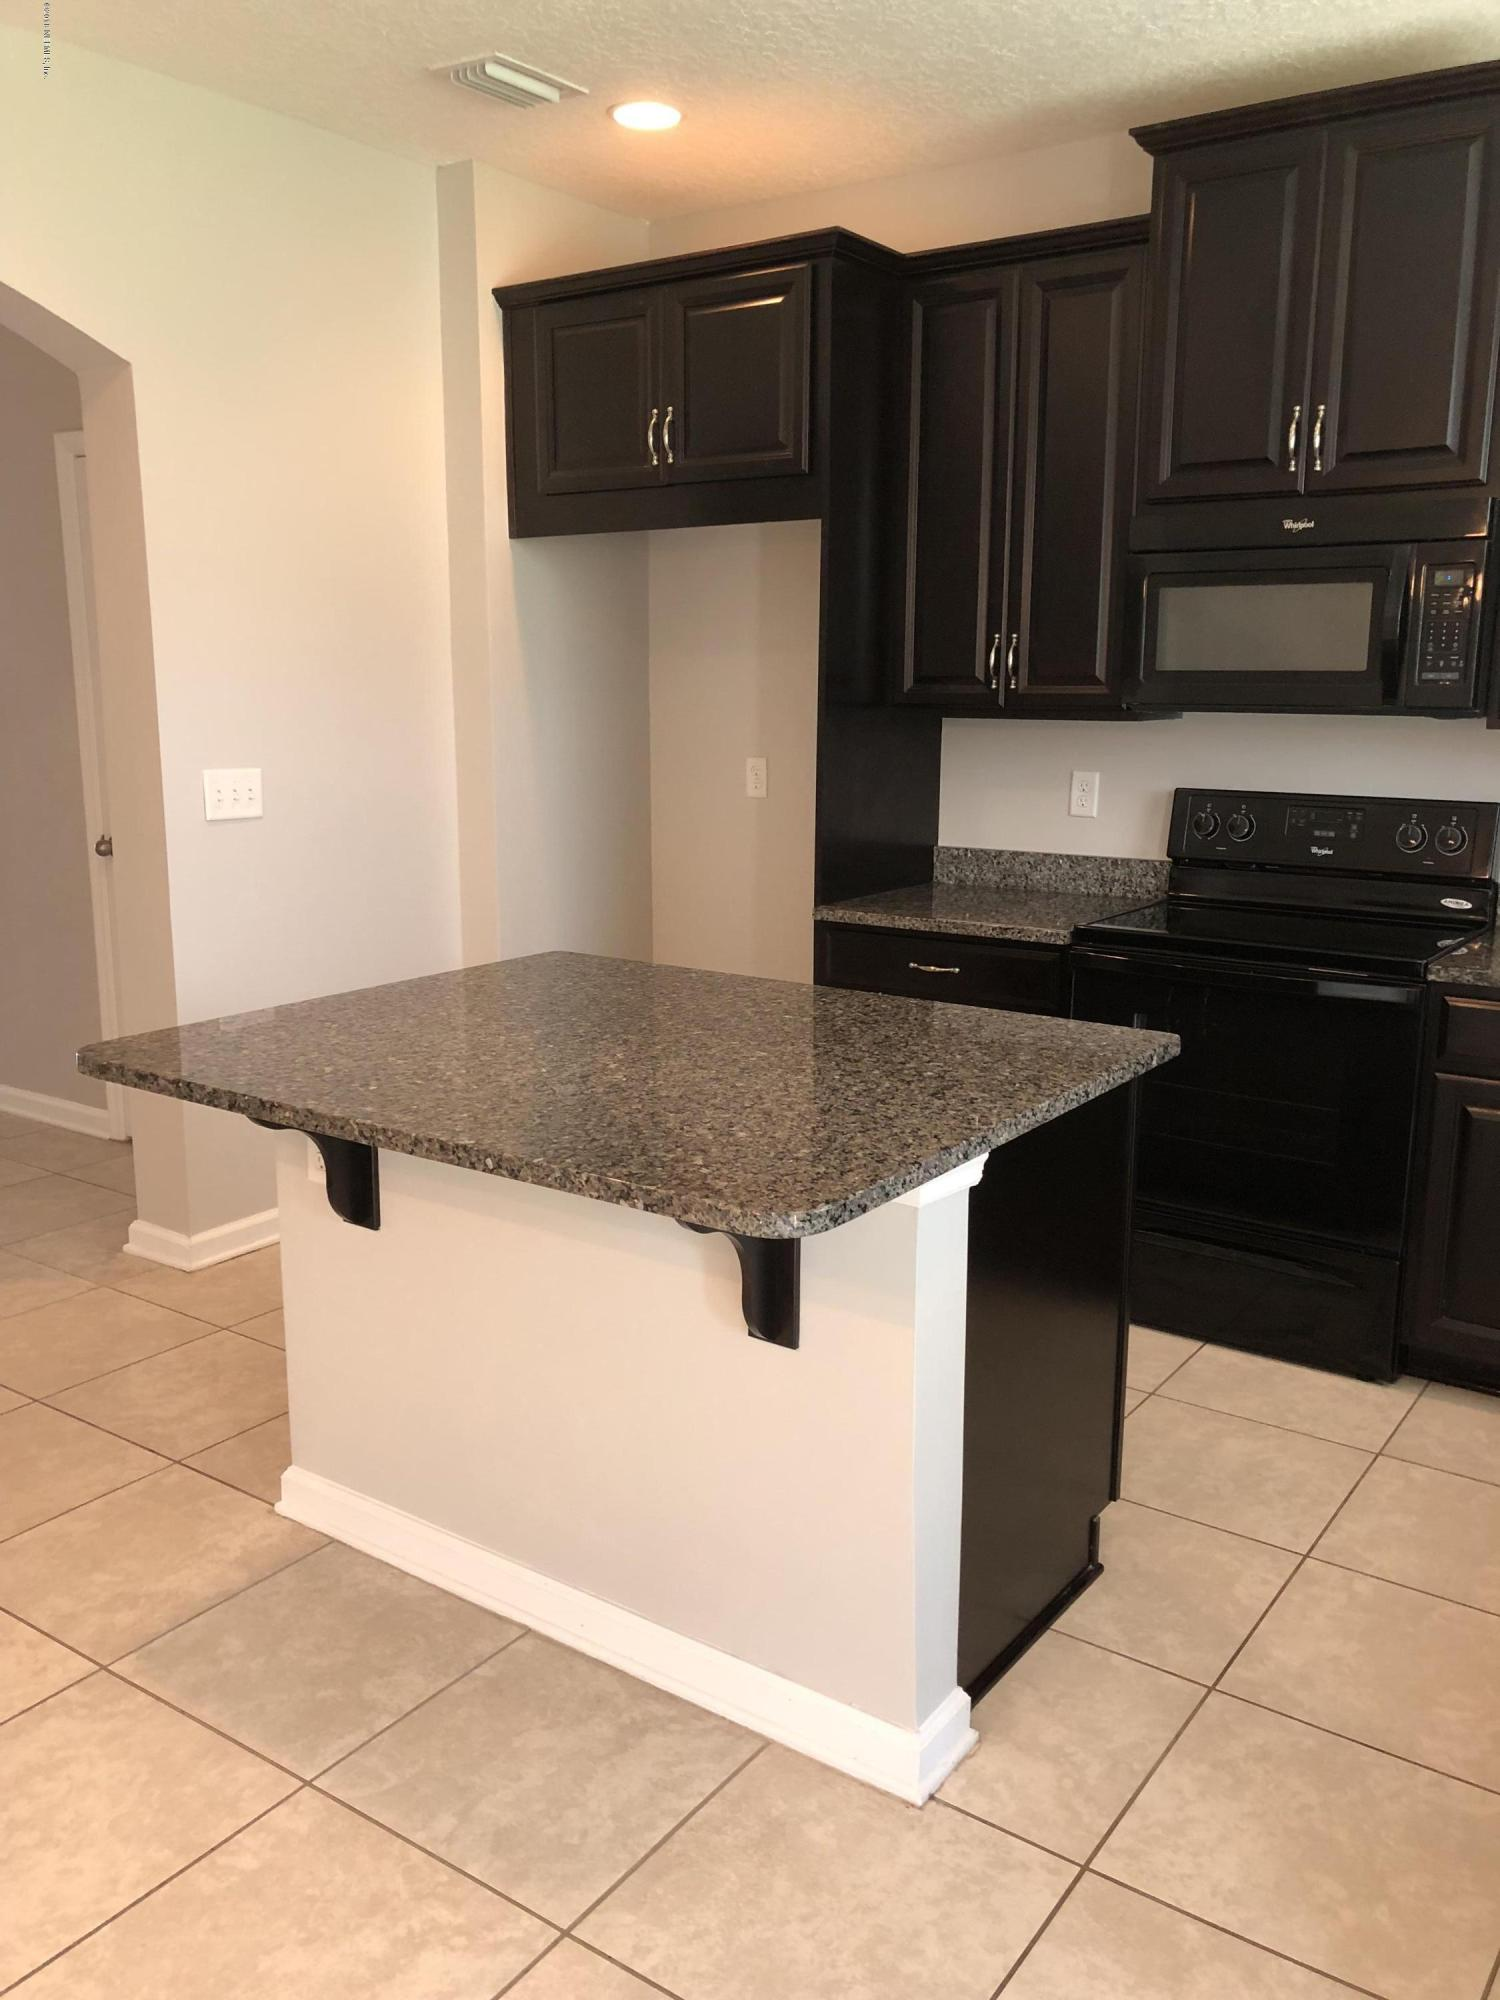 126 RICHMOND, ST JOHNS, FLORIDA 32259, 3 Bedrooms Bedrooms, ,2 BathroomsBathrooms,Residential - townhome,For sale,RICHMOND,951758